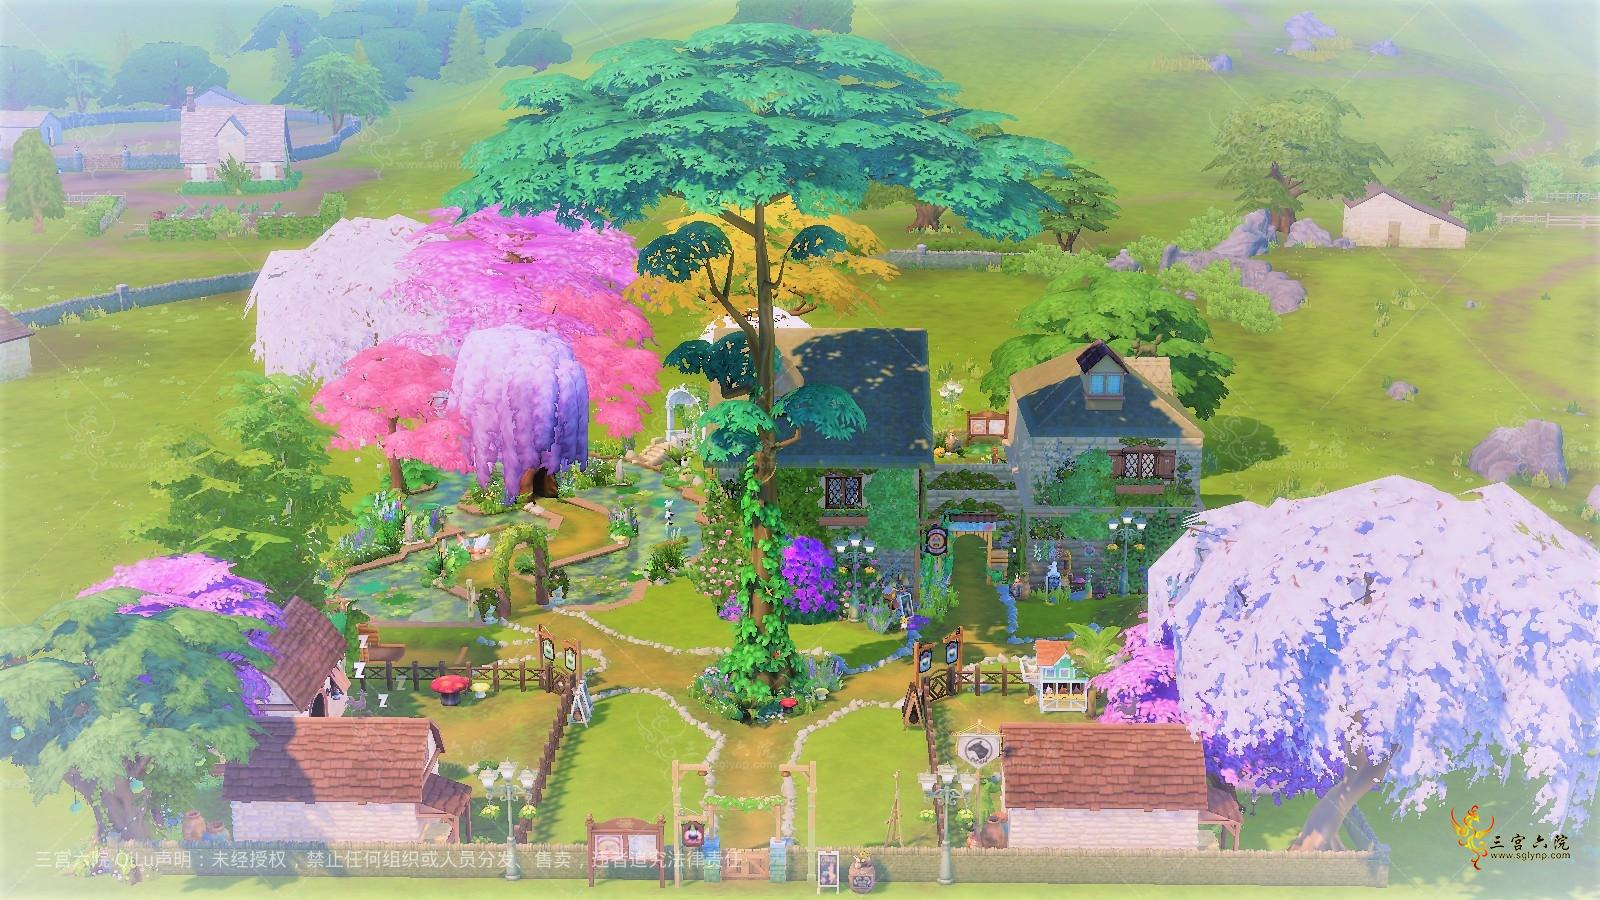 The Sims 4 2021_8_21 17_01_59.png